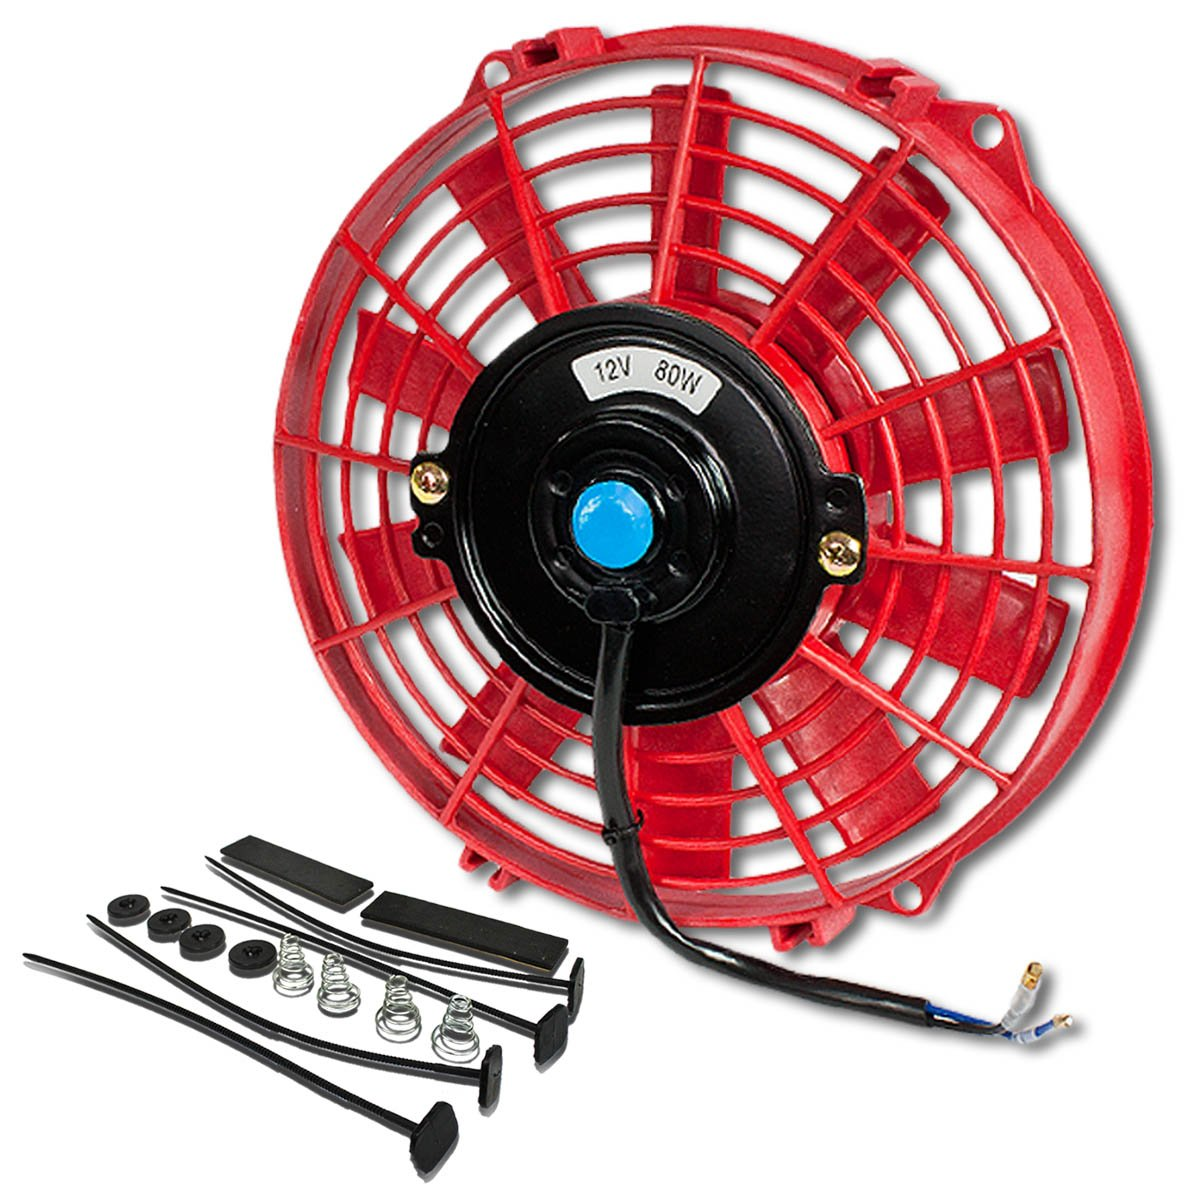 Pack of 1 10 Inch High Performance 12V Electric Slim Radiator Cooling Fan w//Mounting Kit Red